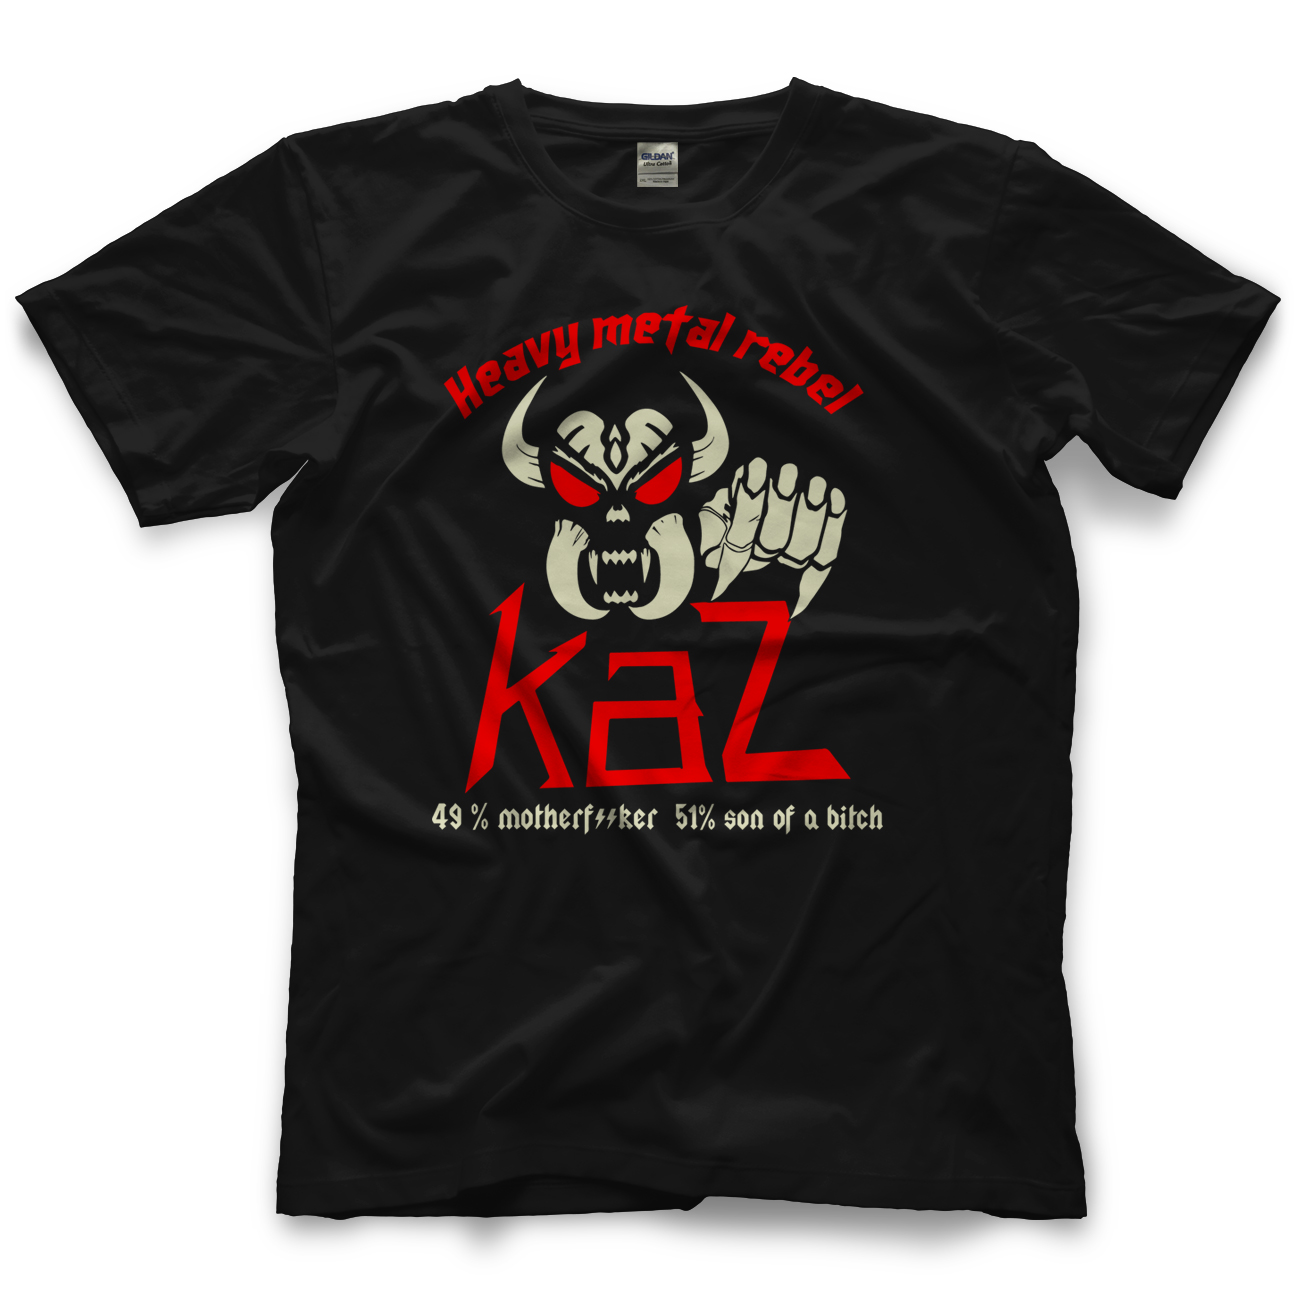 Frankie Kazarian Heavy Metal Rebel T-shirt